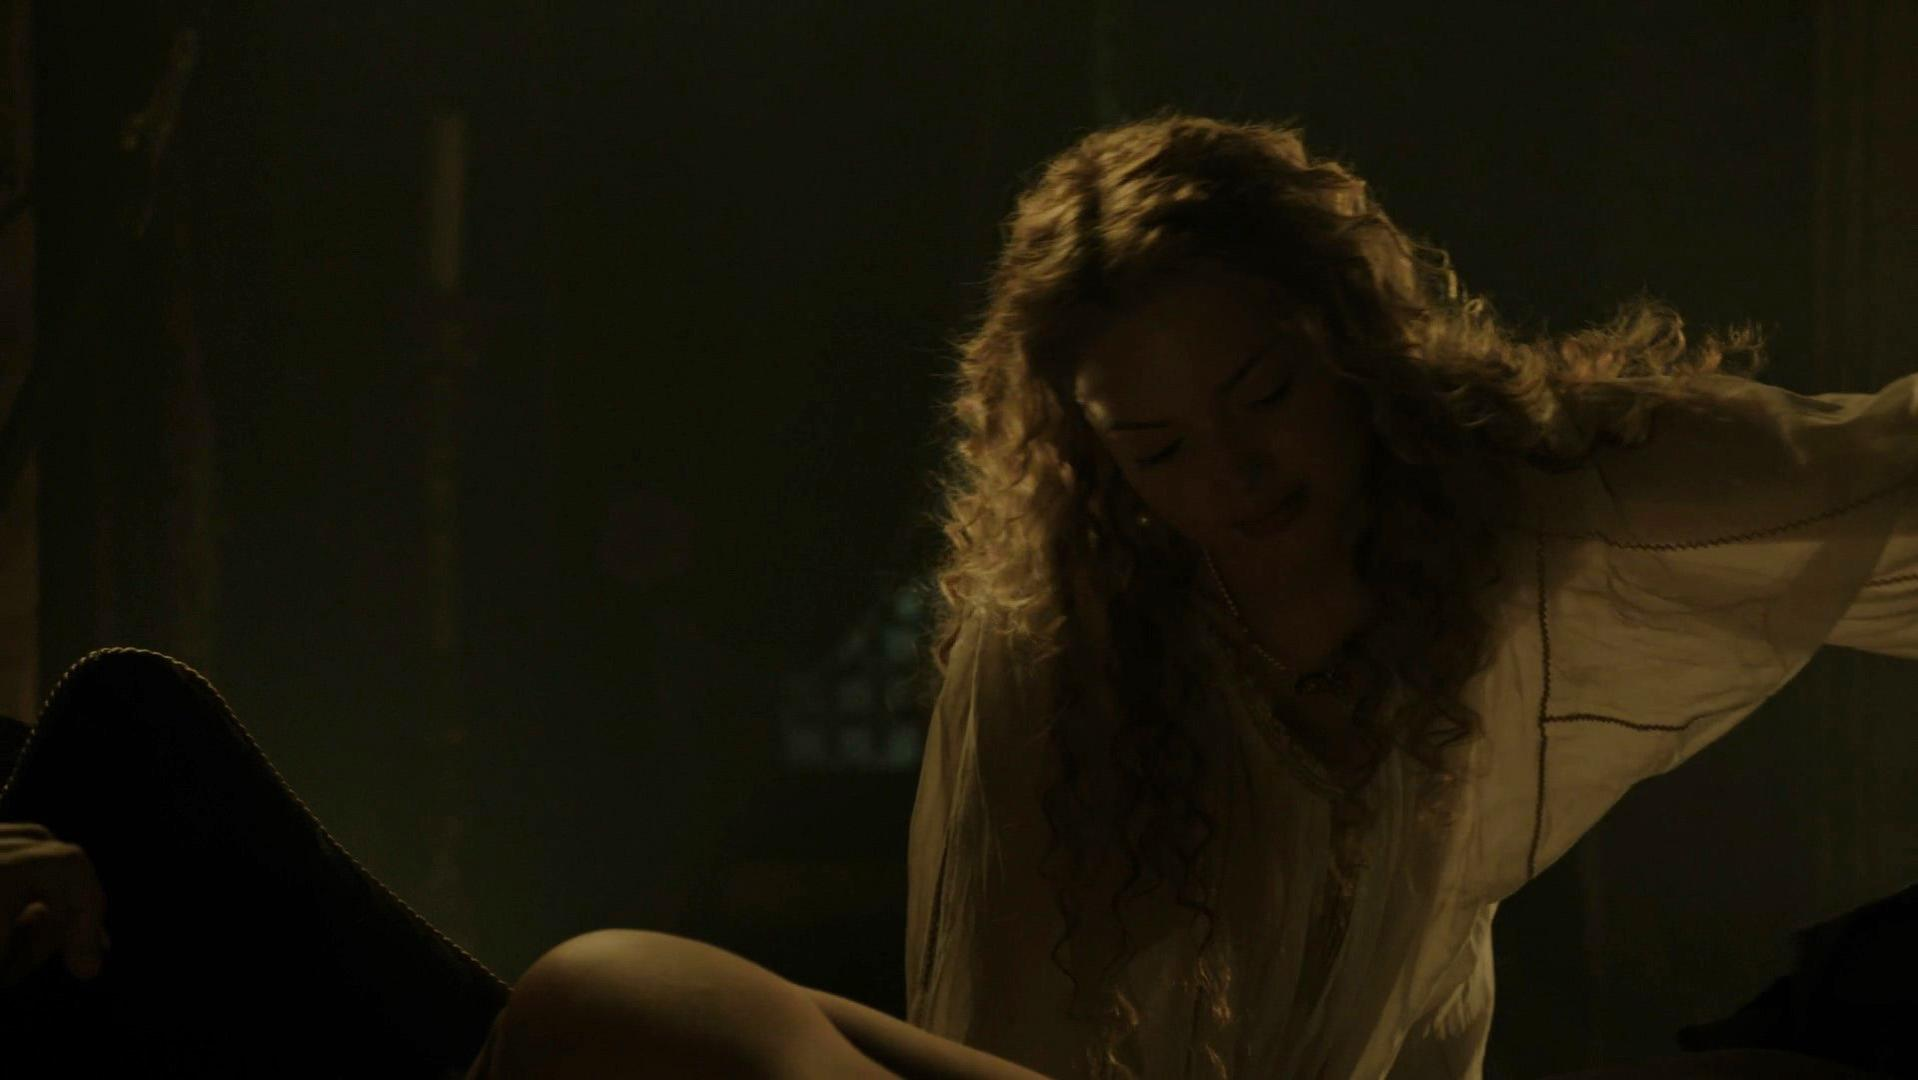 Also like holliday grainger naked